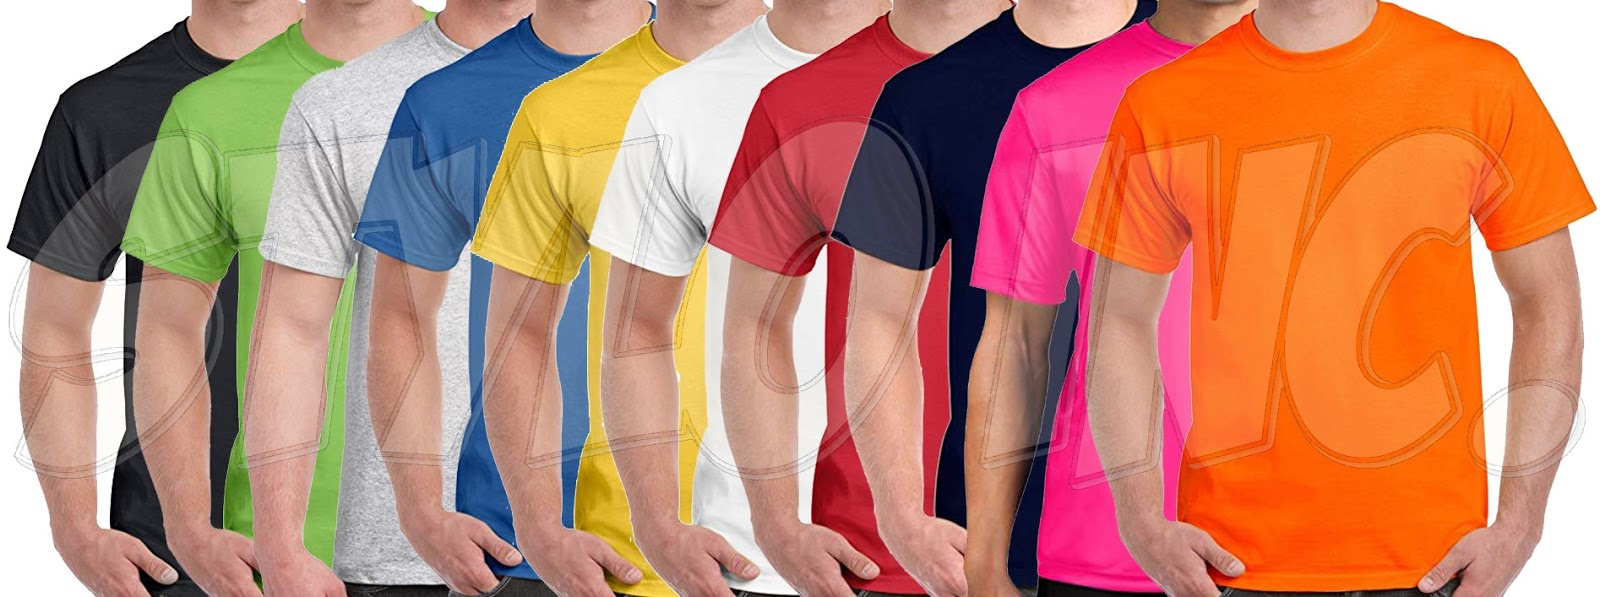 Cotton T-Shirts 6pcs Bundle